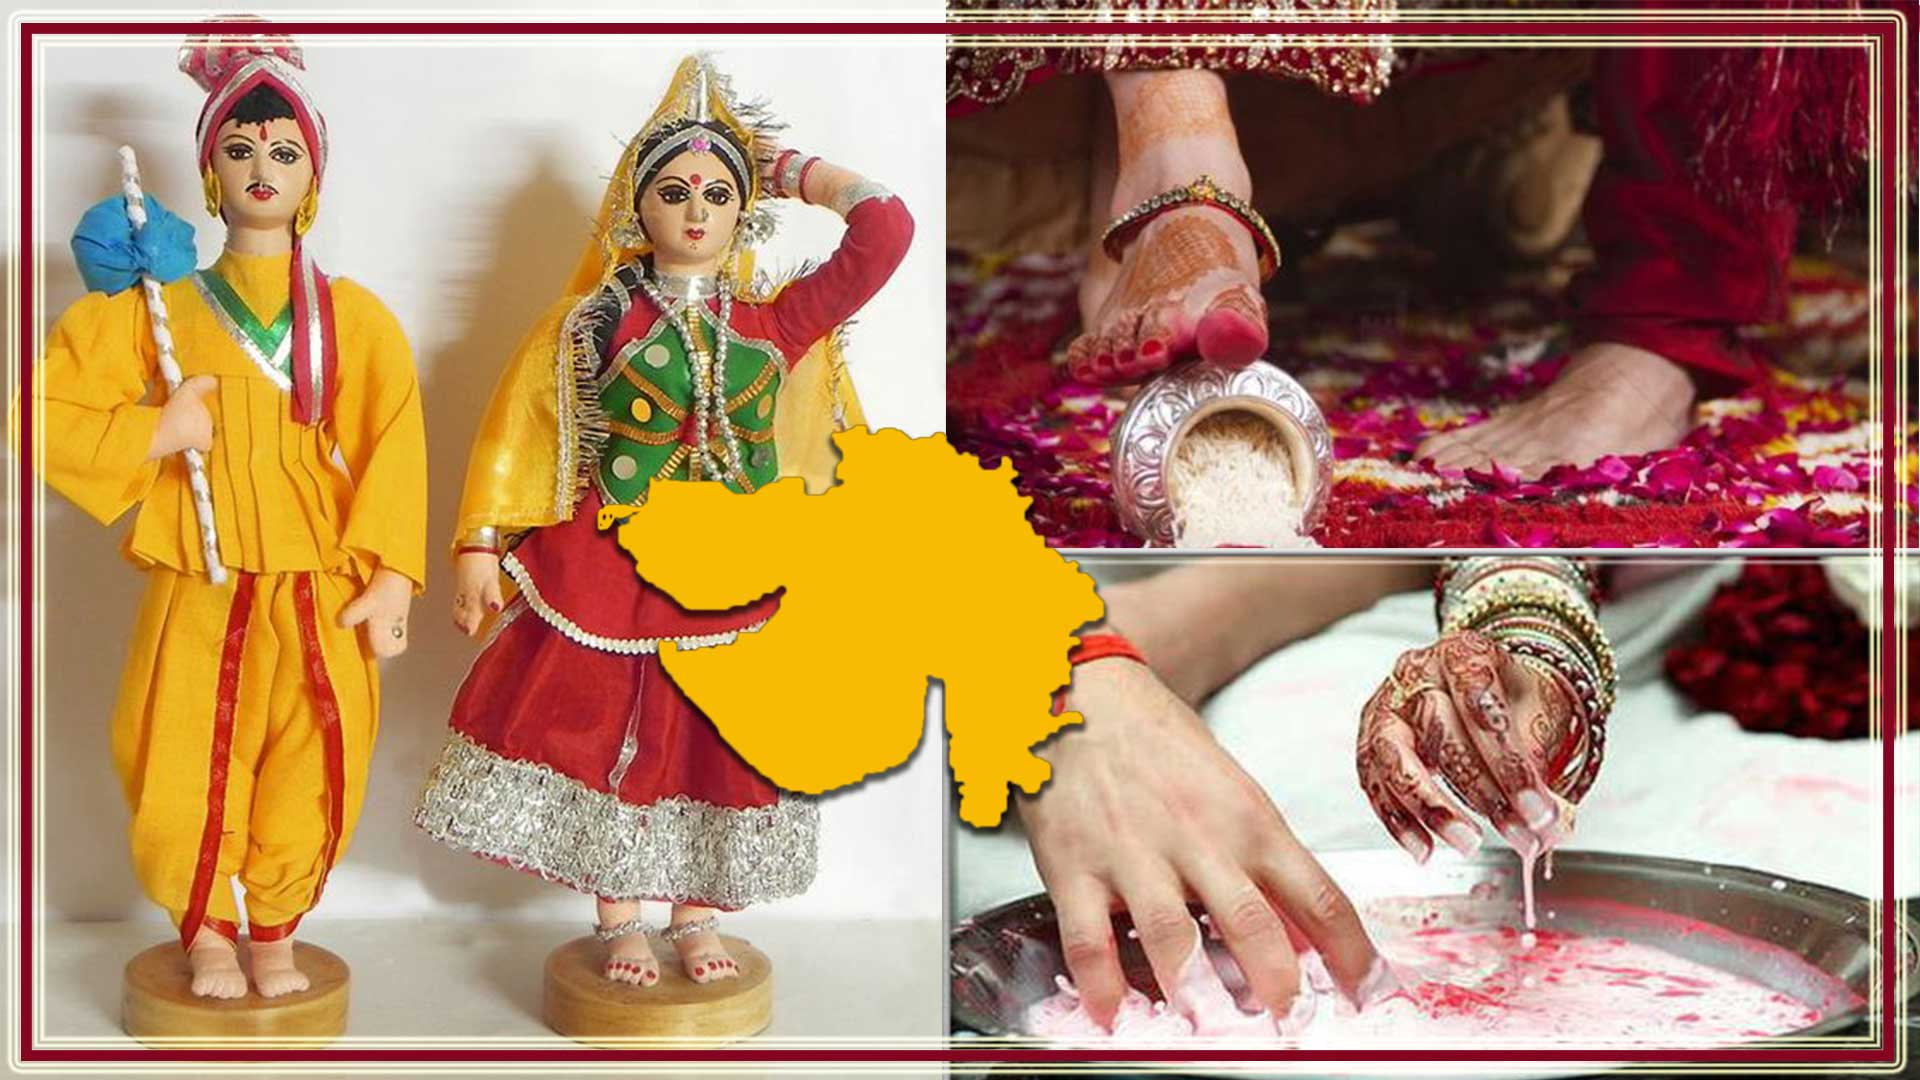 WEDDINGS IN GUJARAT